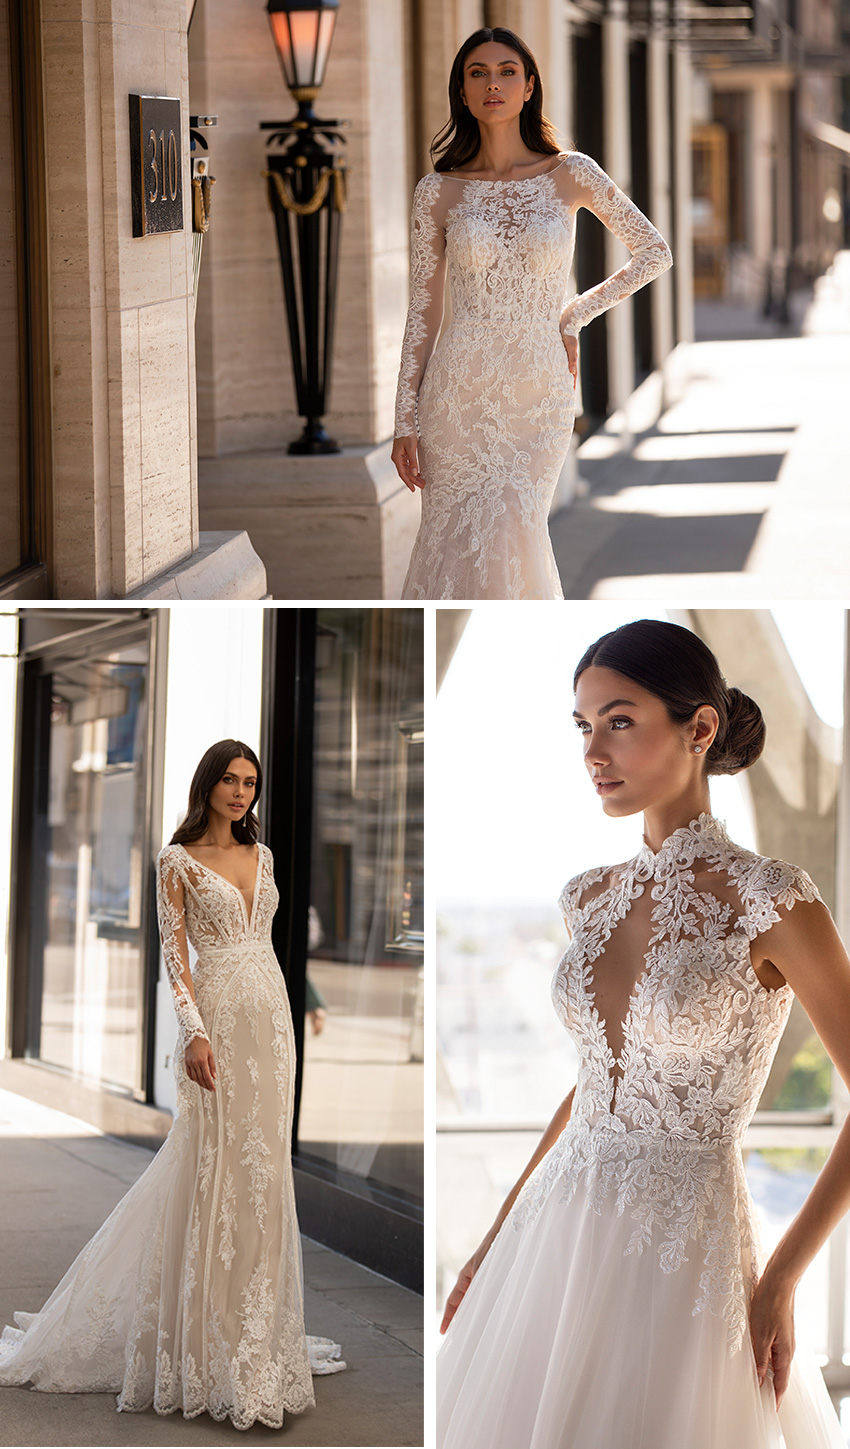 Pronovias 2021 Cruise collection inspired in Hollywood's glamour featuring laces in mermaid gowns Perfect Wedding Magazine